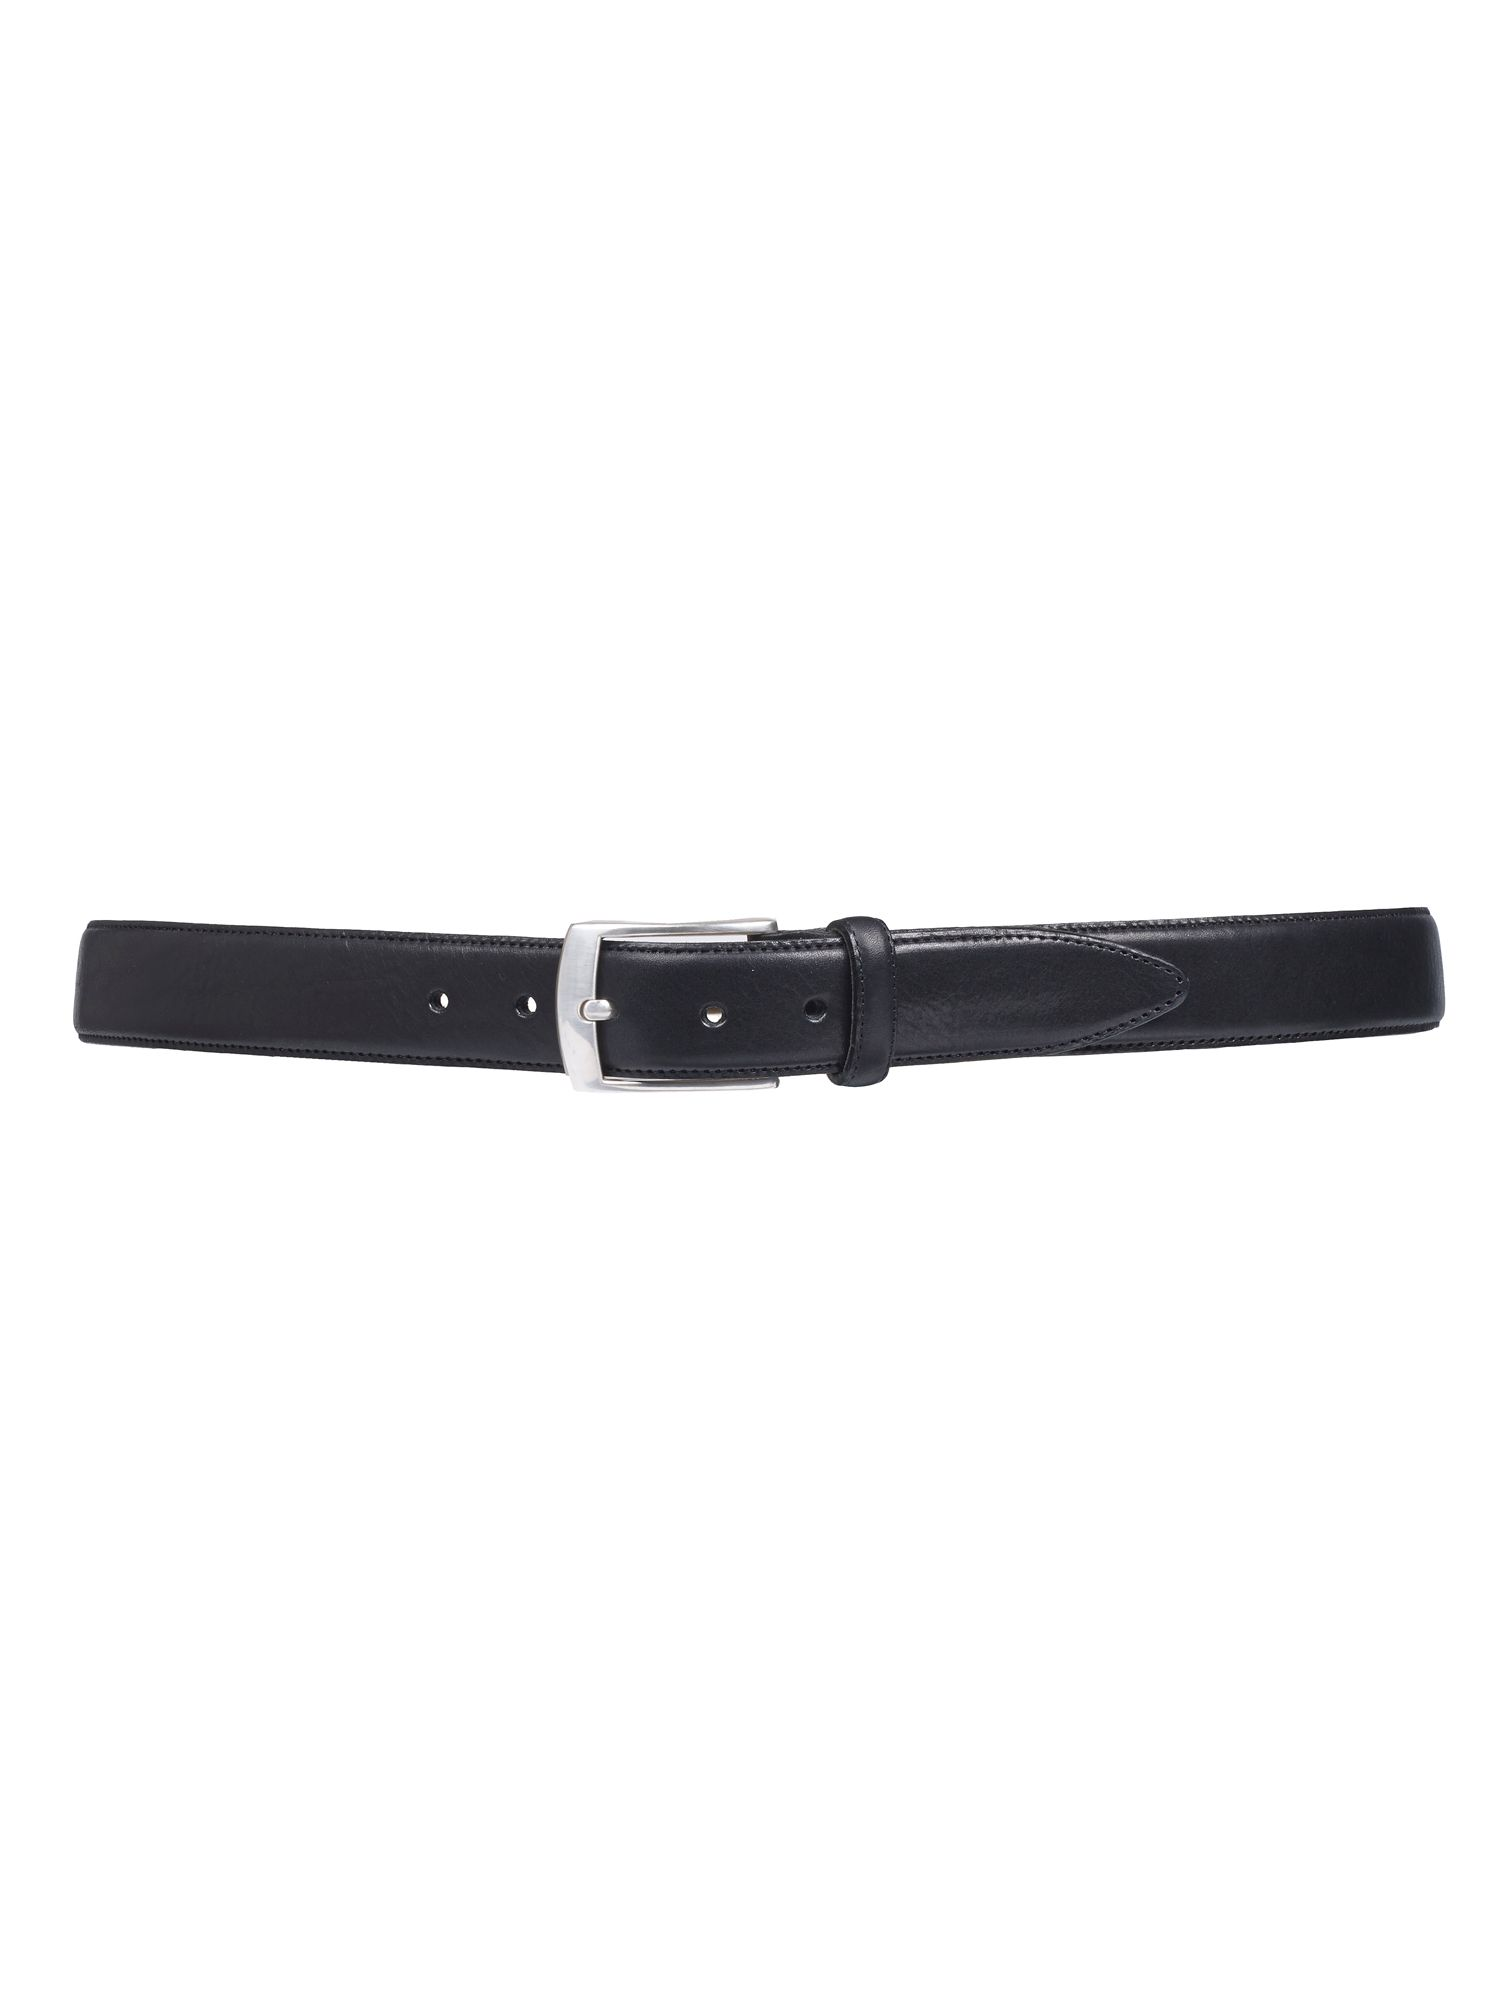 Plain Black Full Grain Leather Belt